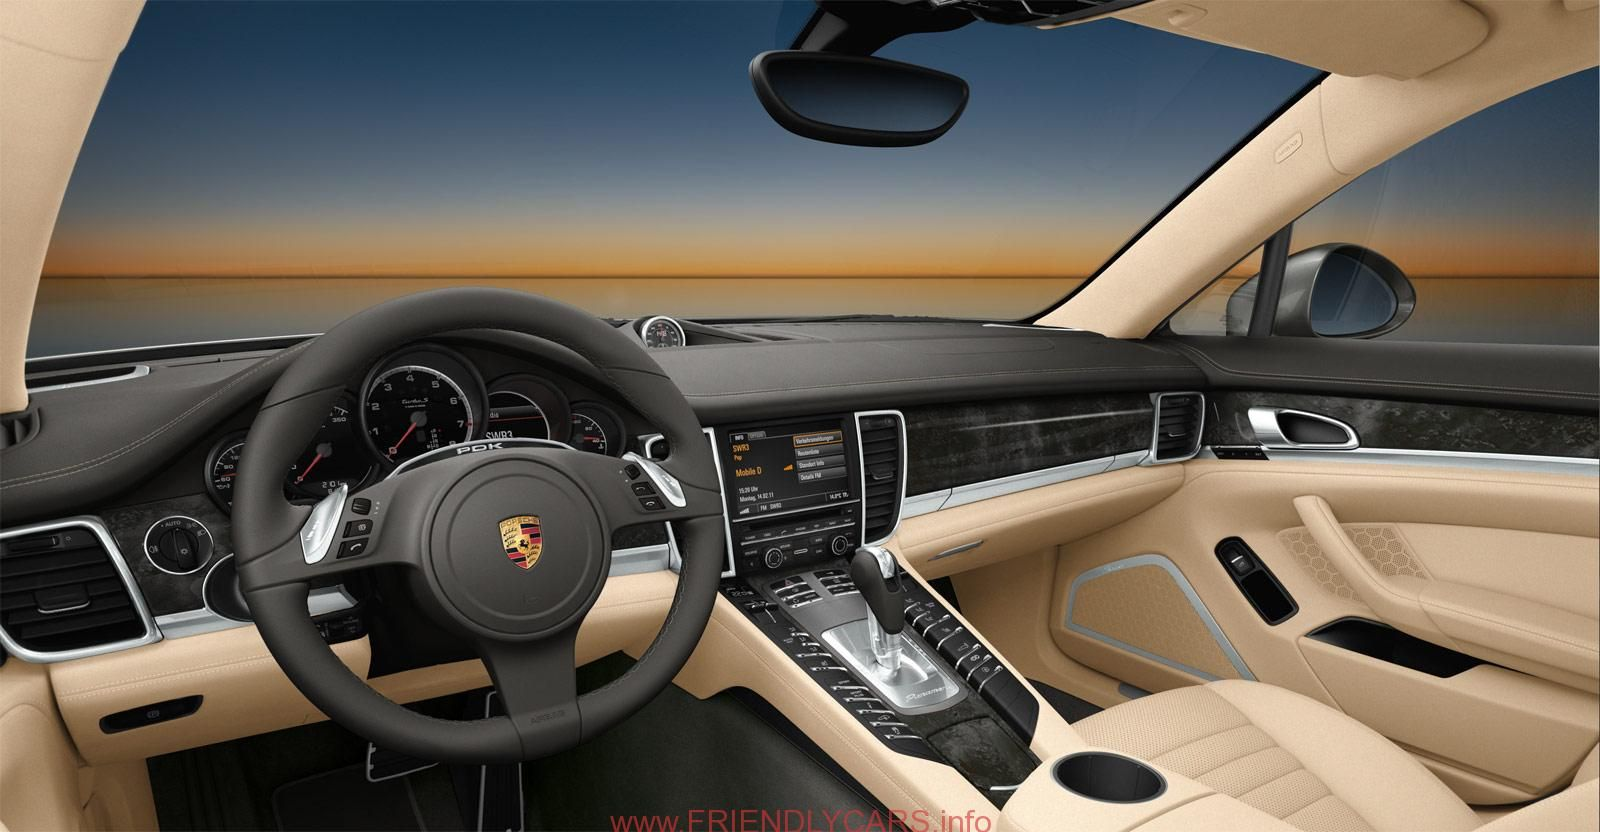 1000 images about porsche cars gallery on pinterest car images porsche 911 and porsche carrera 2014 porsche cayenne turbo s - 2014 Porsche Cayenne Turbo S Interior